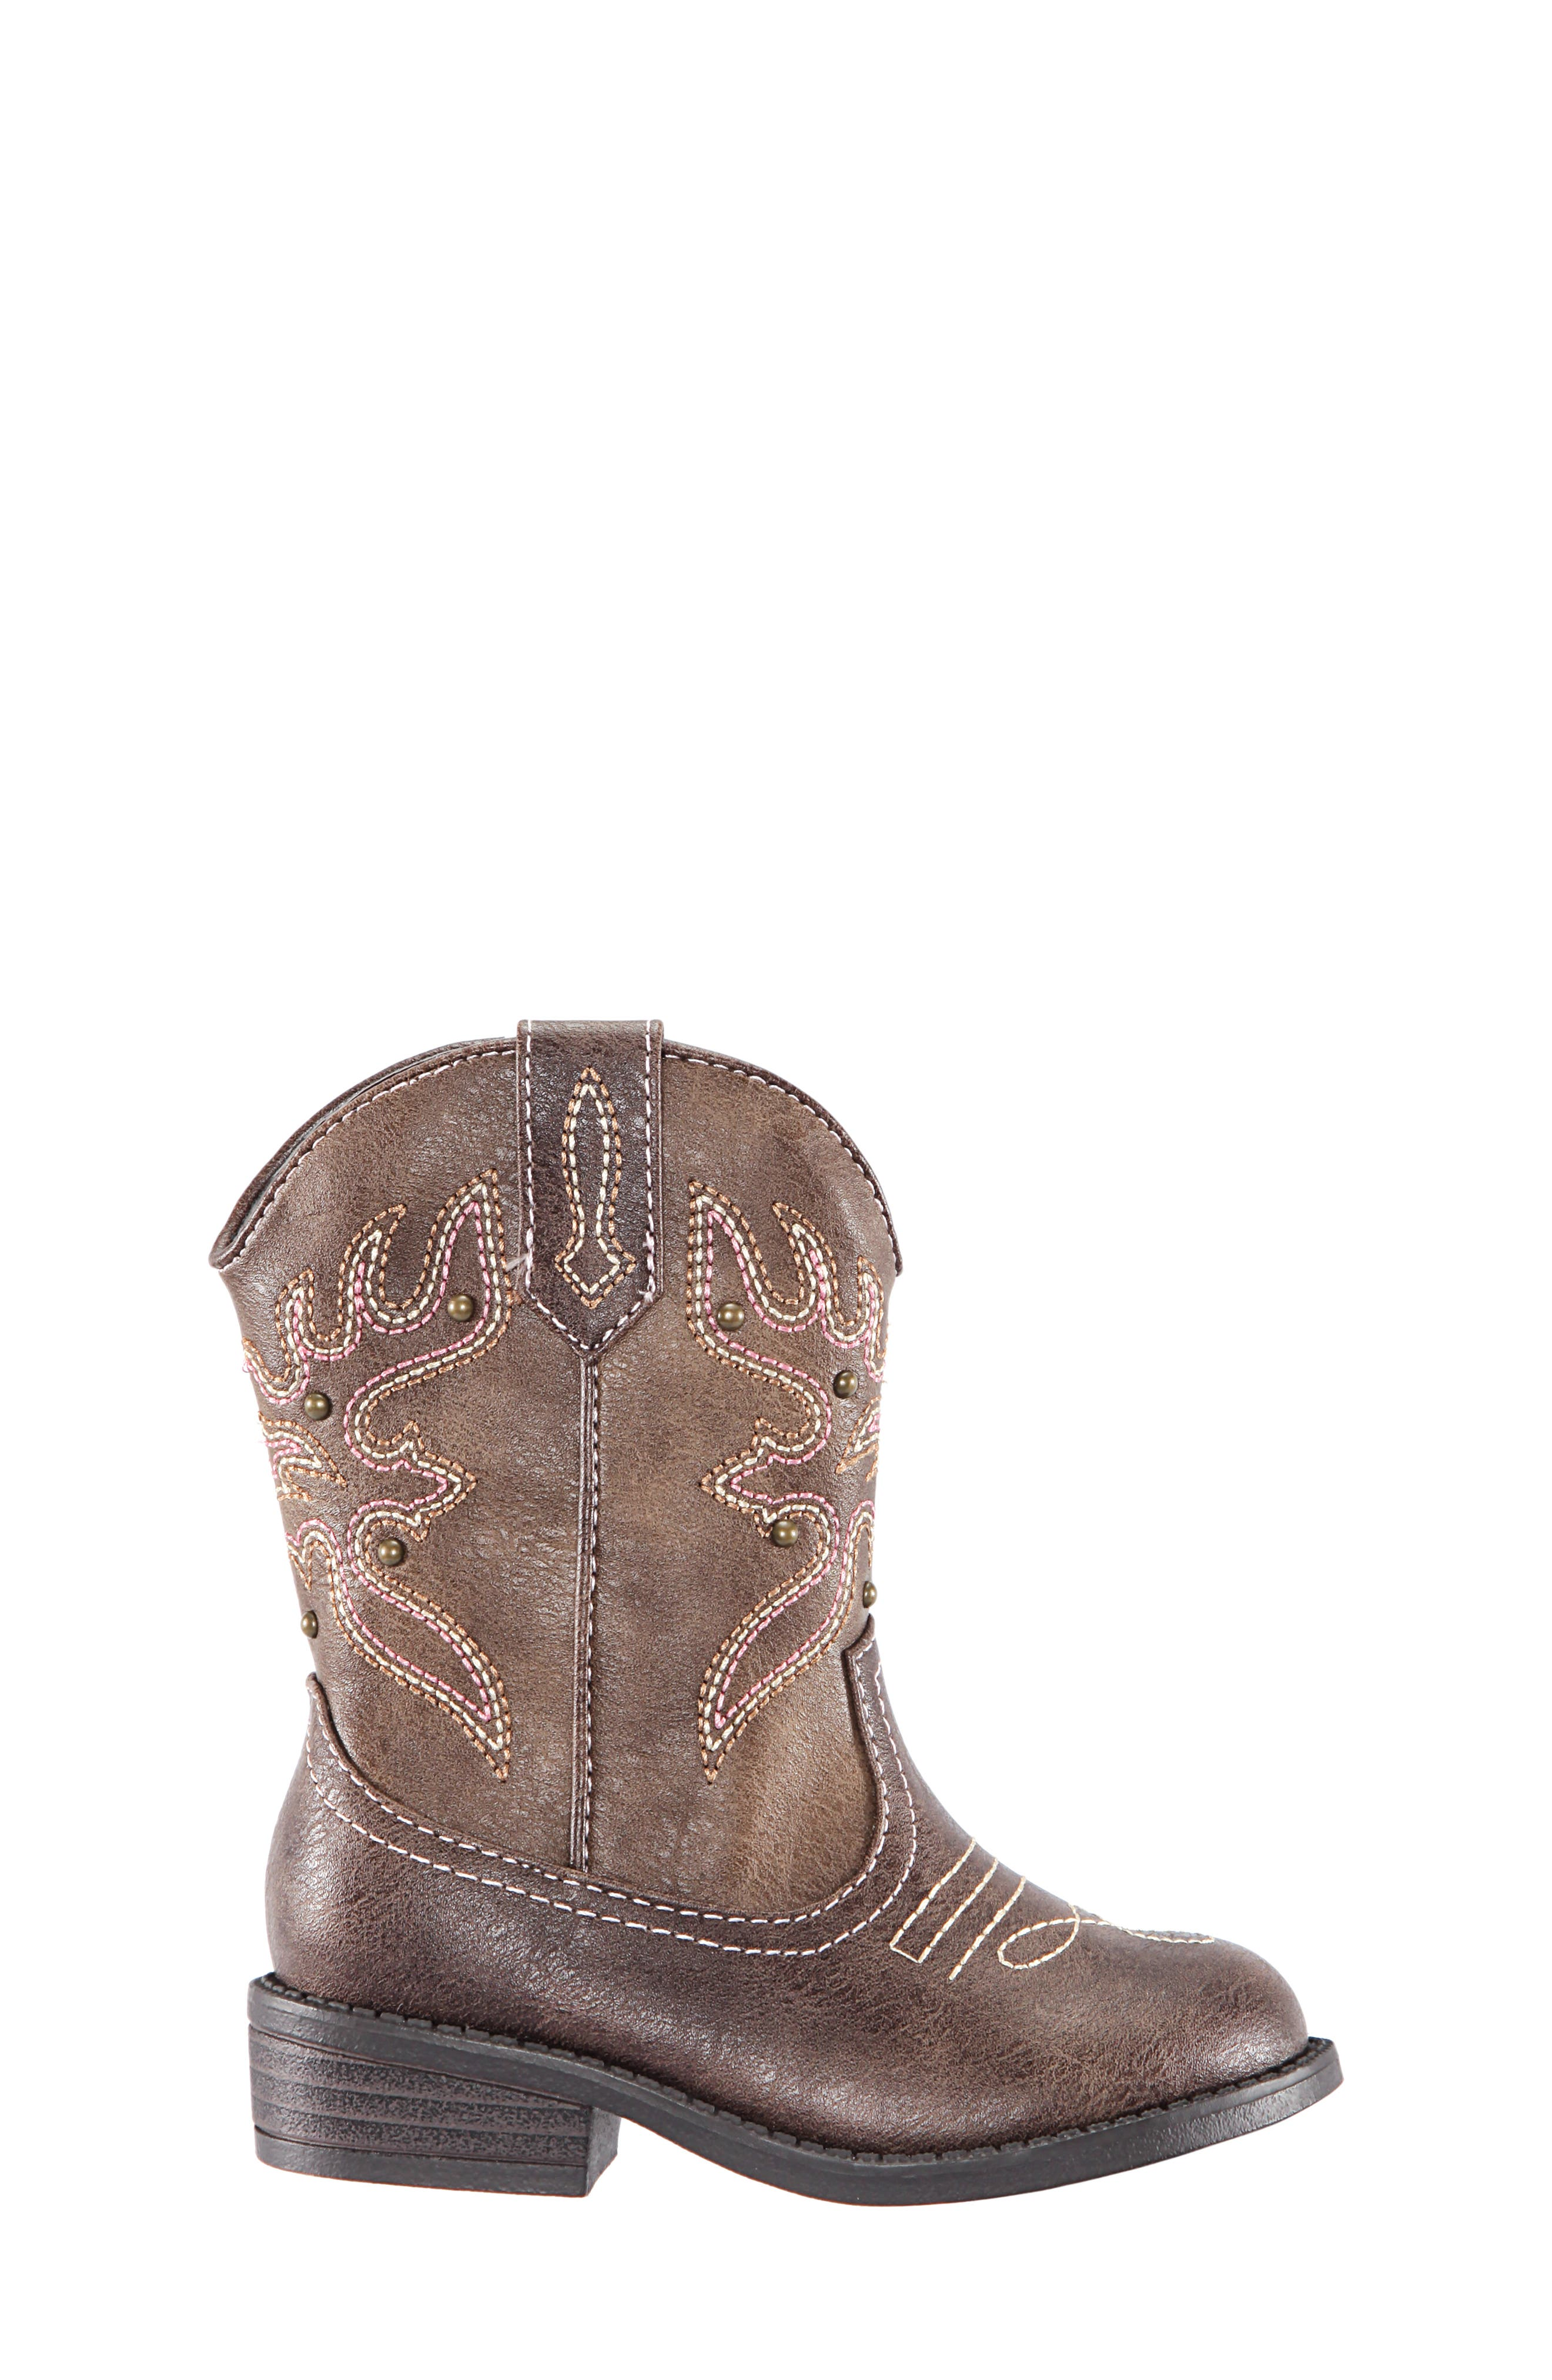 Mirabele Cowboy Boot,                             Alternate thumbnail 3, color,                             BROWN